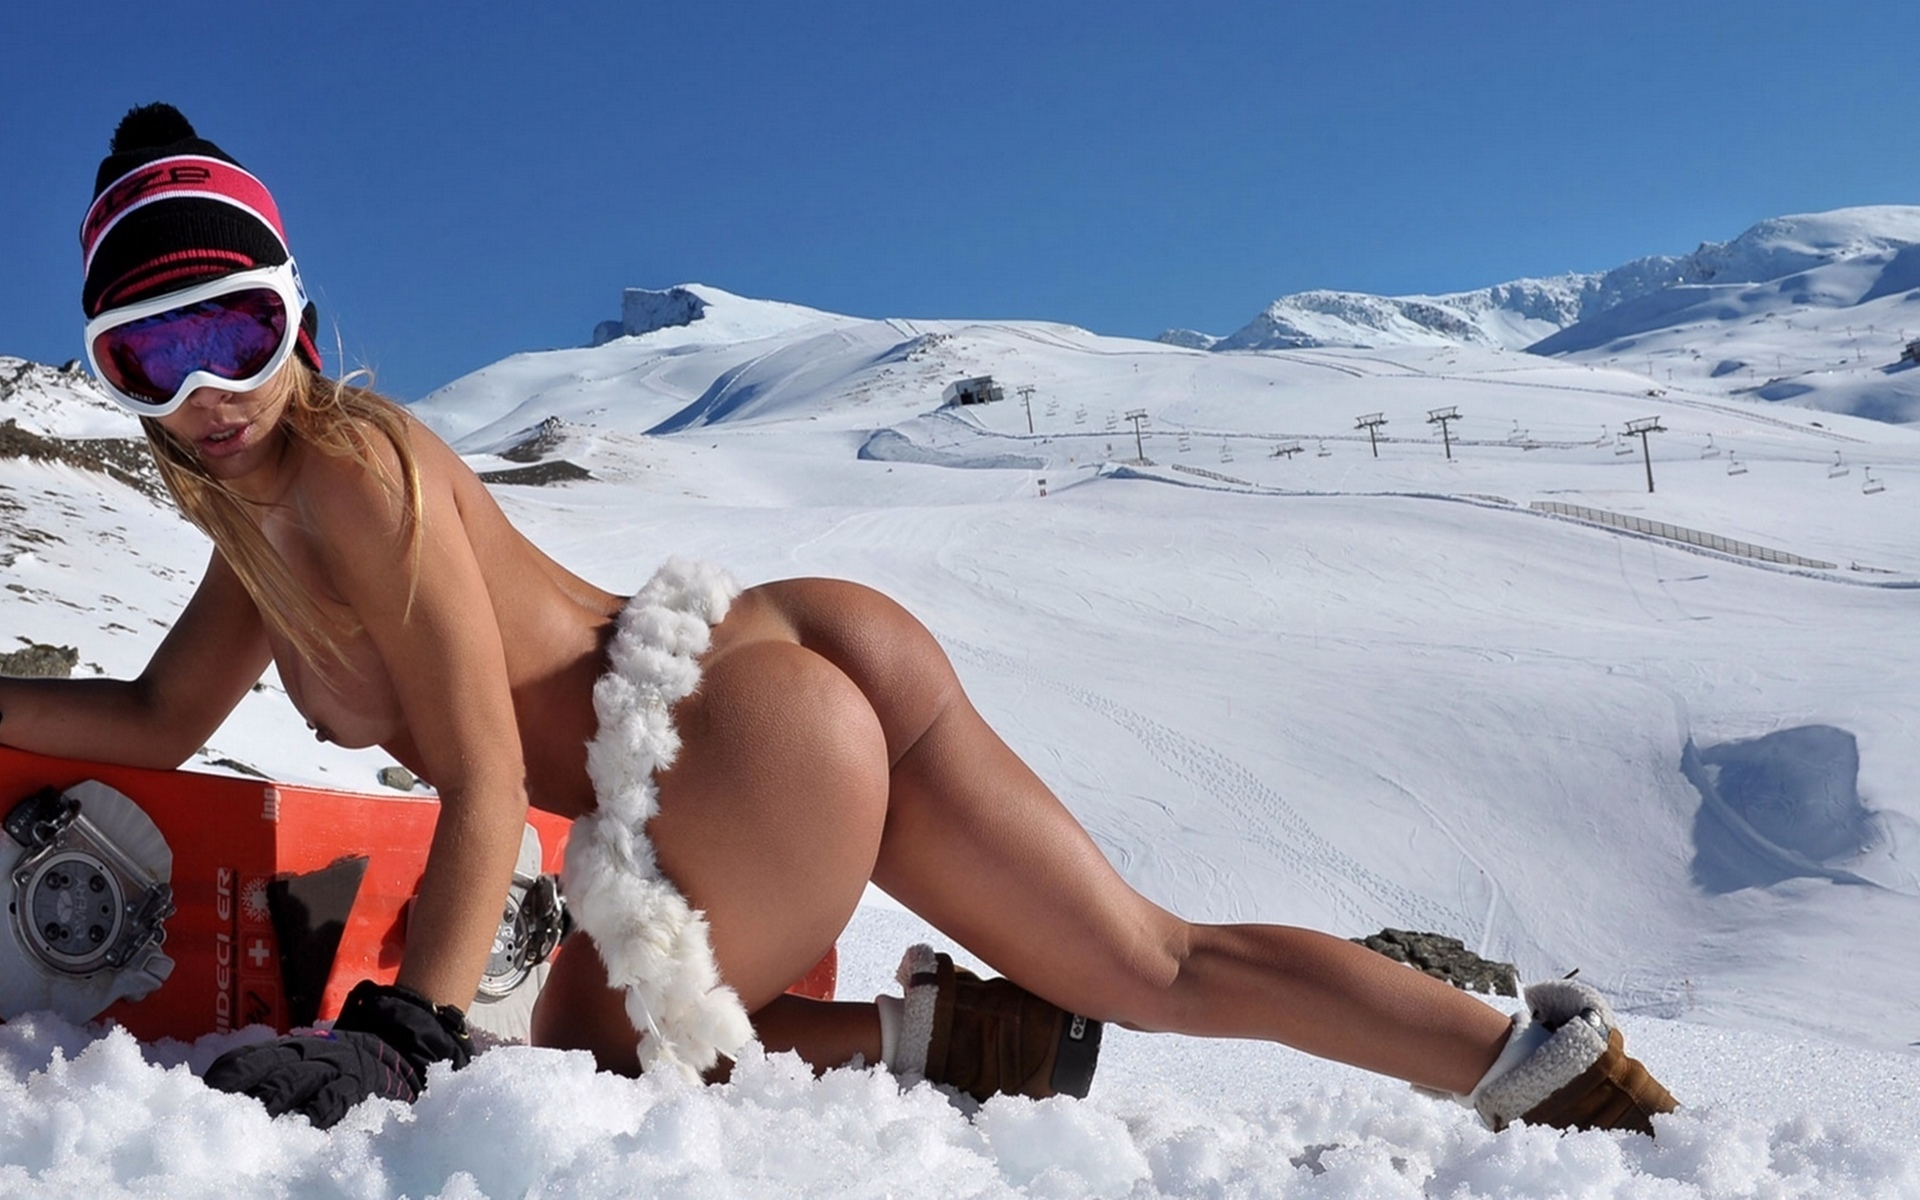 Winter halmi naked